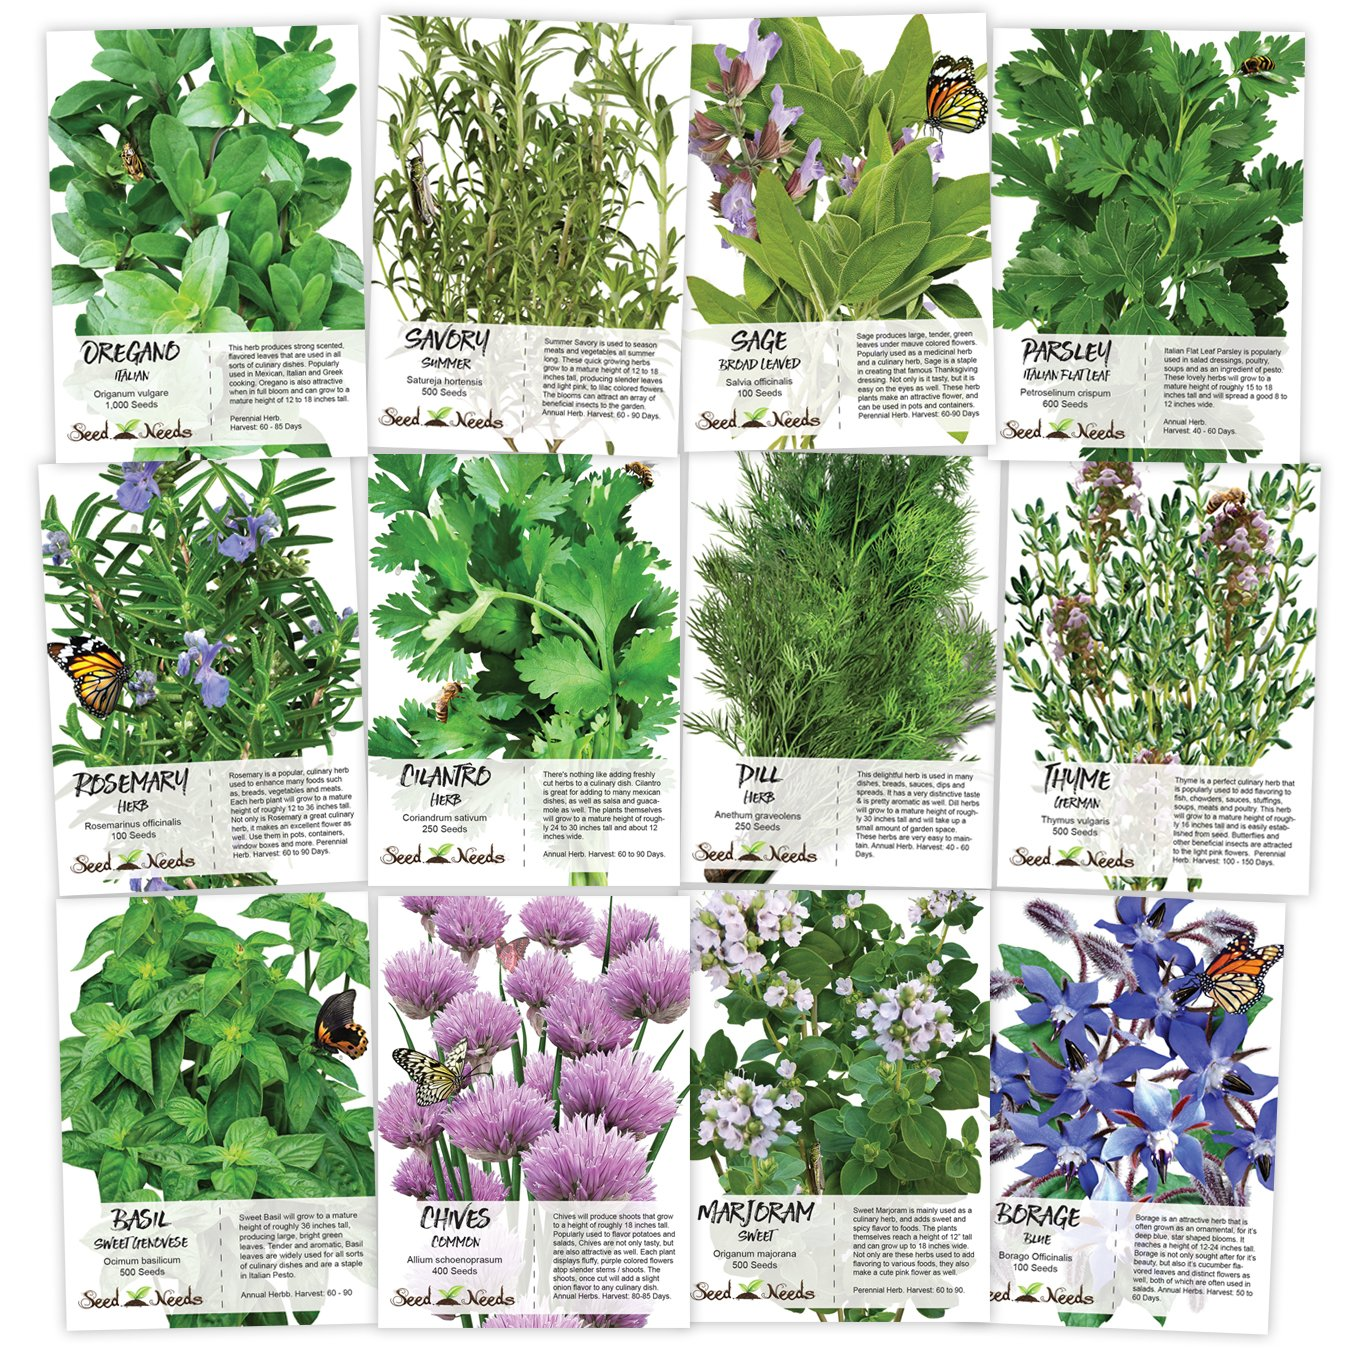 Non-GMO Culinary Herb Seed Collection, 12 Individual Seed Packets Incl. 4,000+ Seeds Collectively (Sage, Basil, Chives, Cilantro, Rosemary, Dill, Marjoram, Oregano & More!) Seeds by Seed Needs by Seed Needs